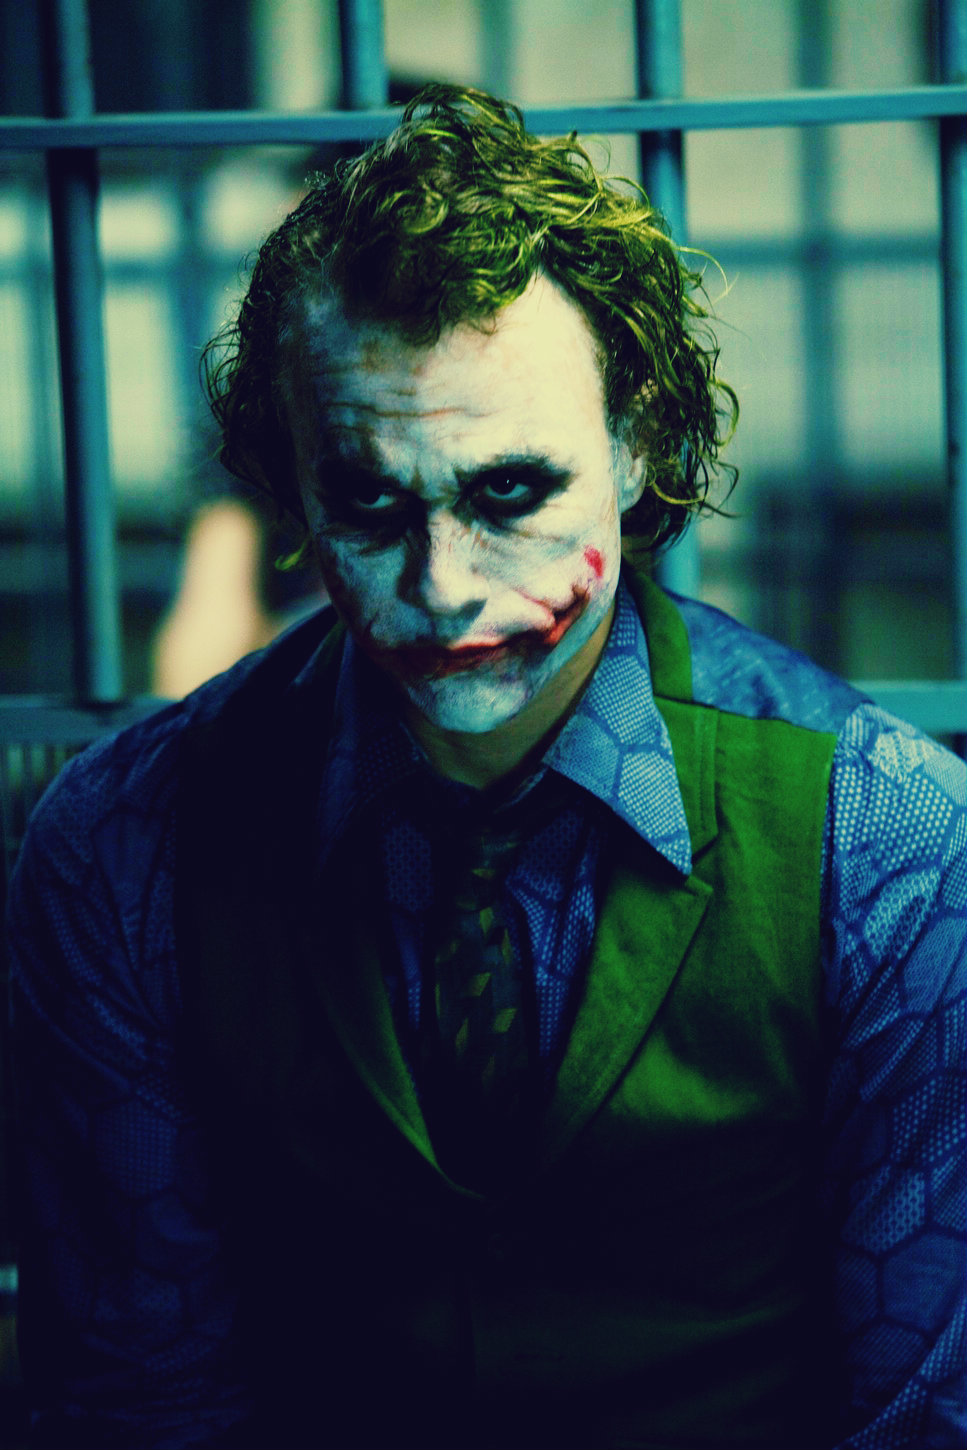 The Joker Images HD Wallpaper And Background Photos